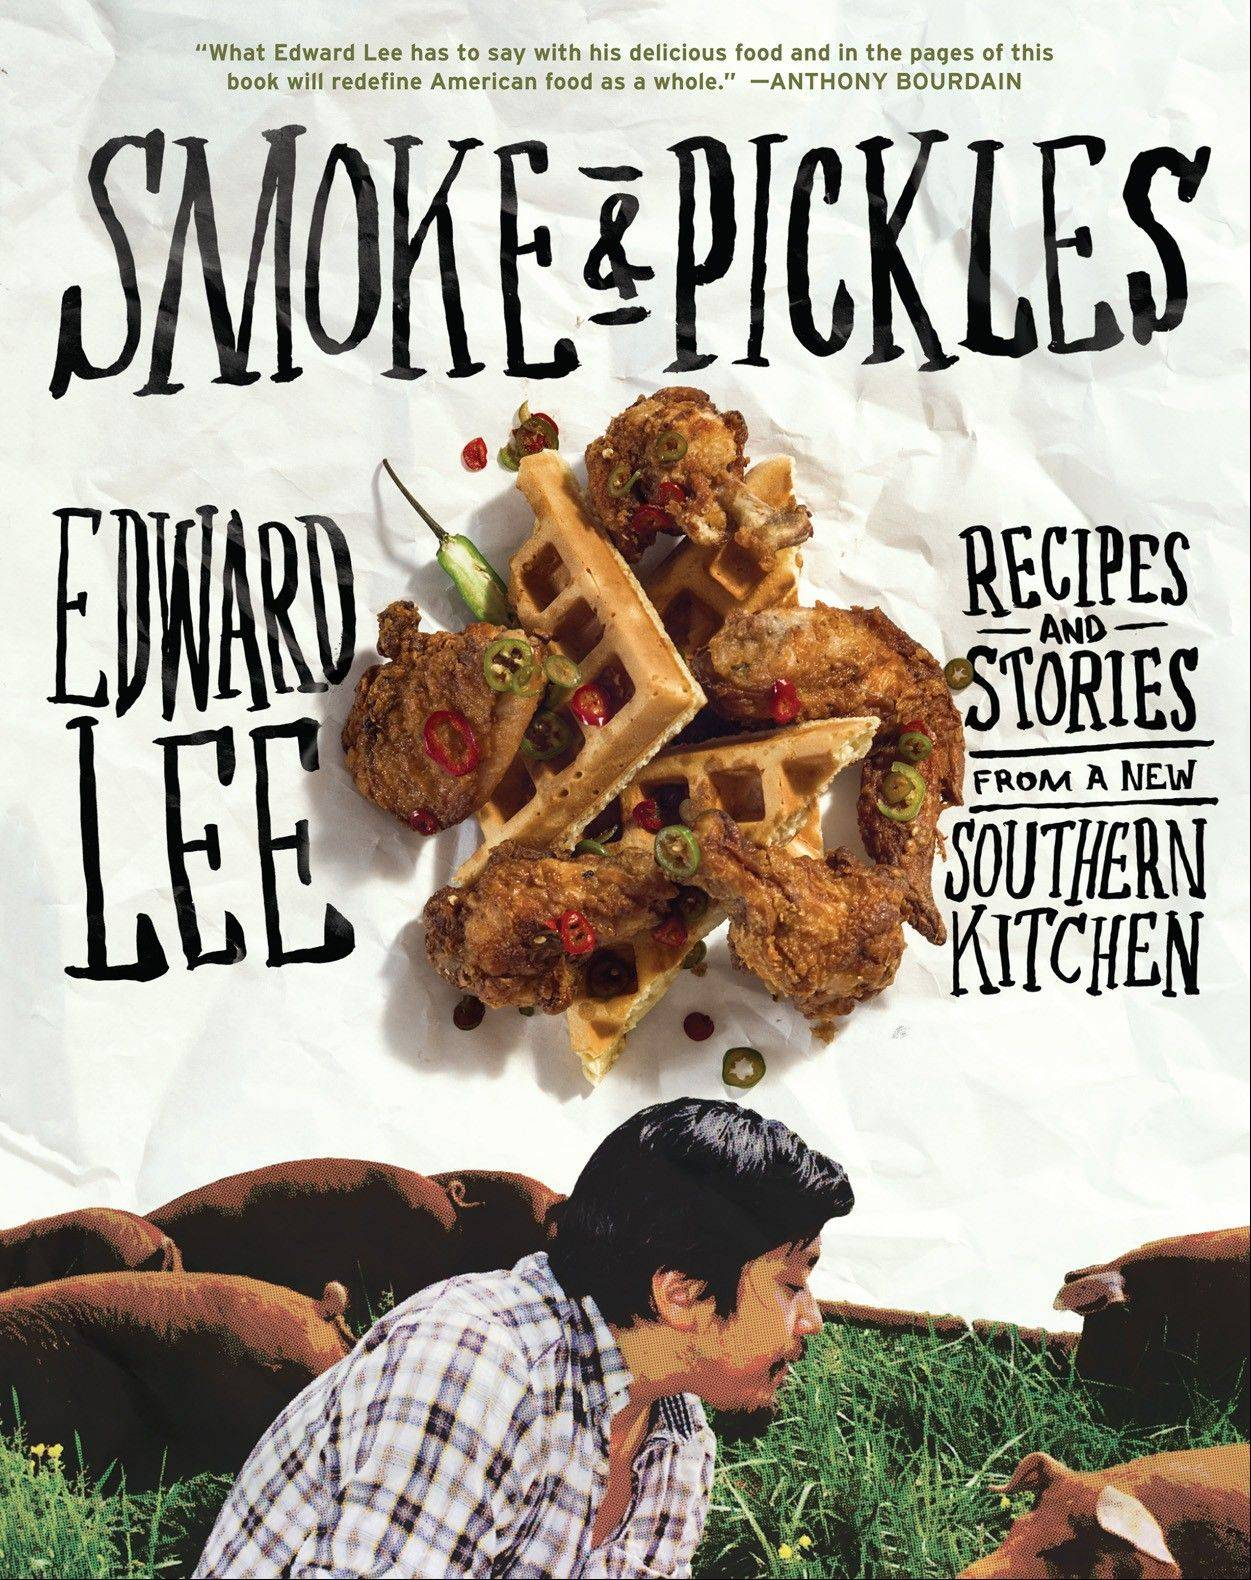 �Smoke & Pickles� by Edward Lee